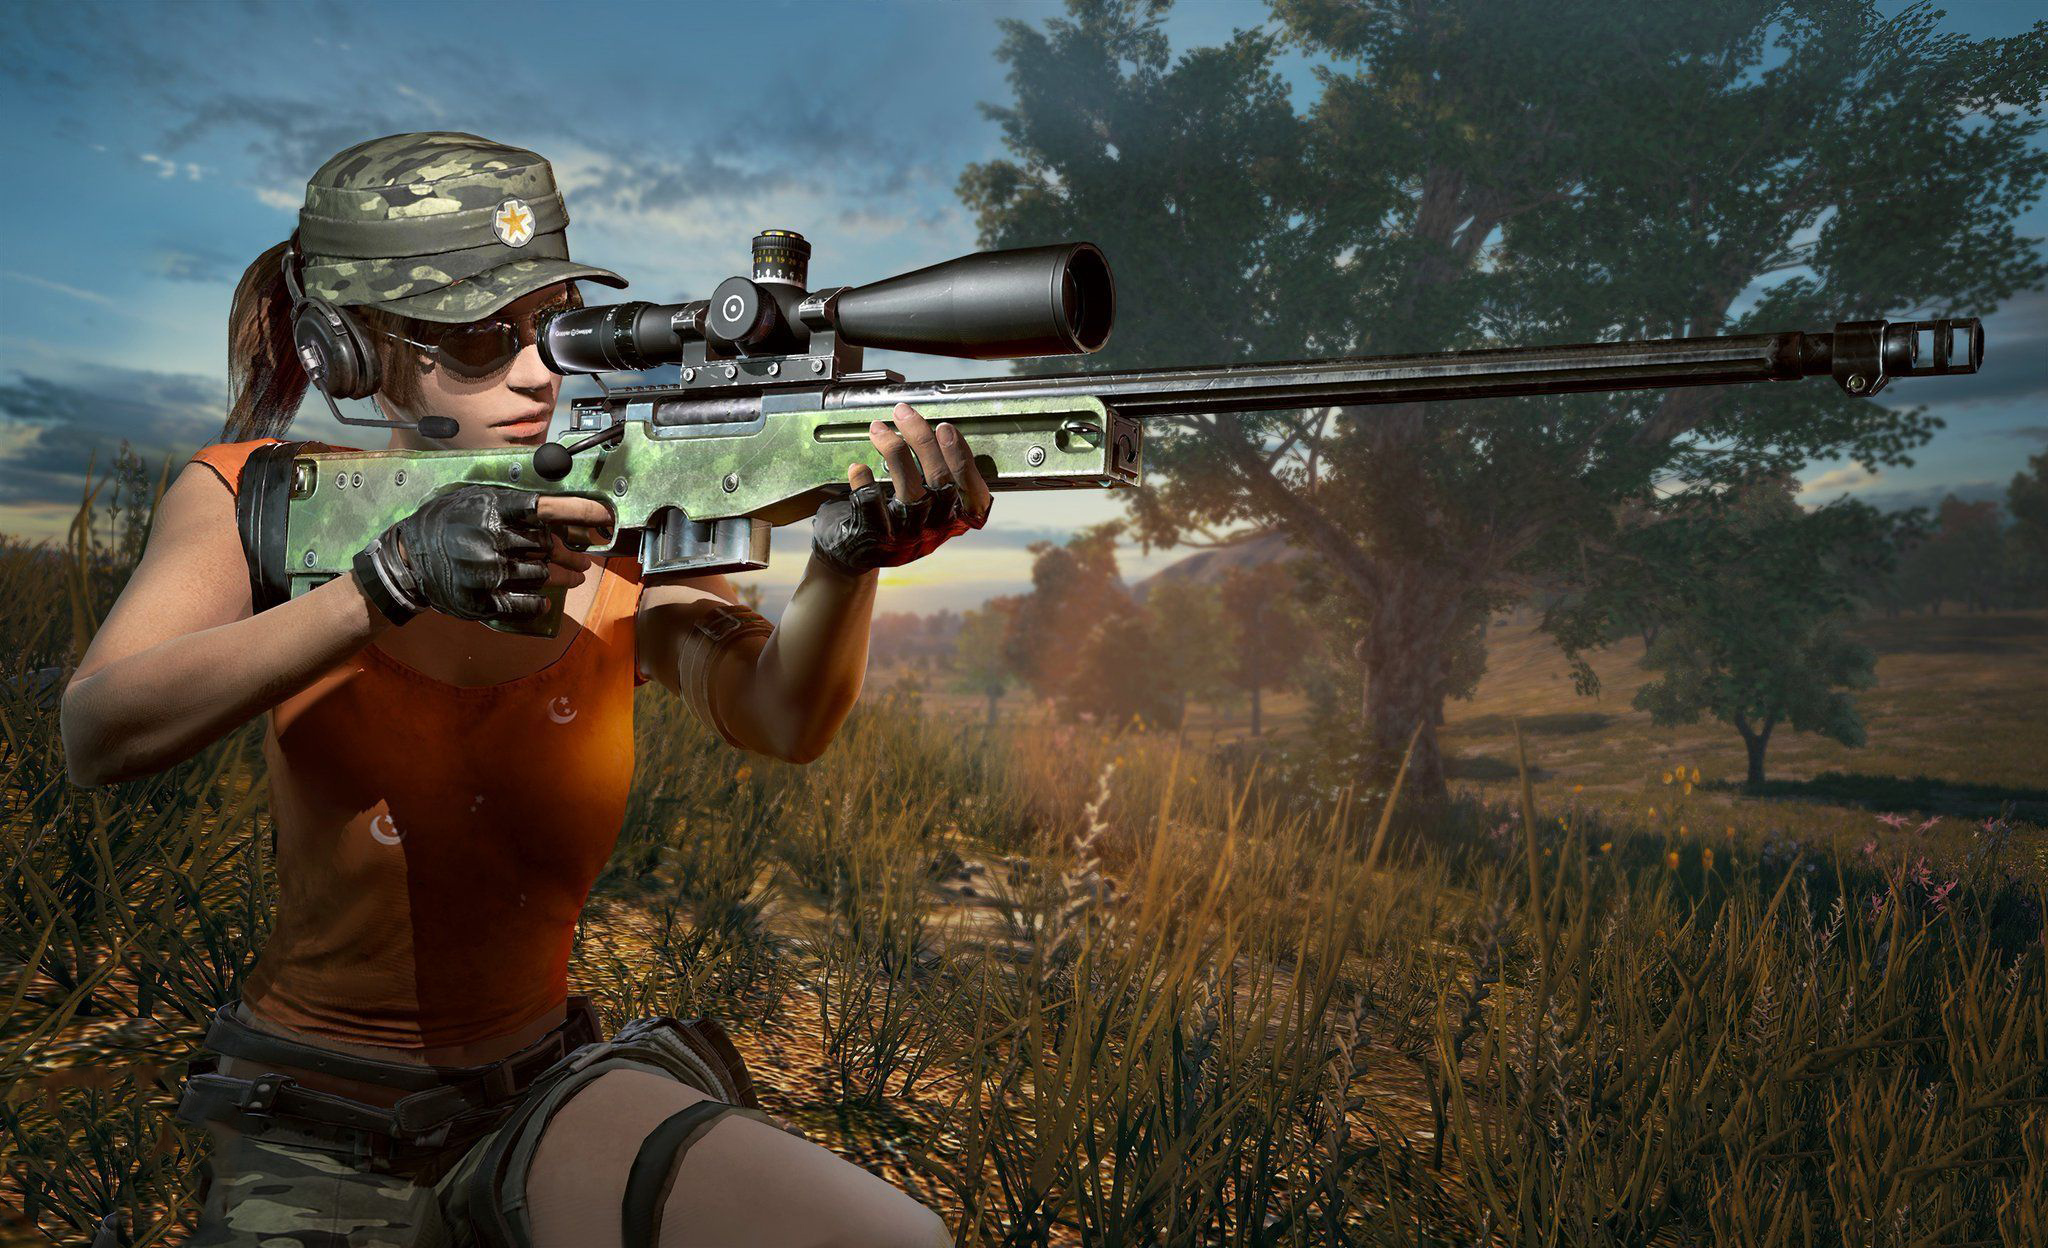 Pubg Hot Hd Wallpaper: Pubg Girl 2018, HD Games, 4k Wallpapers, Images